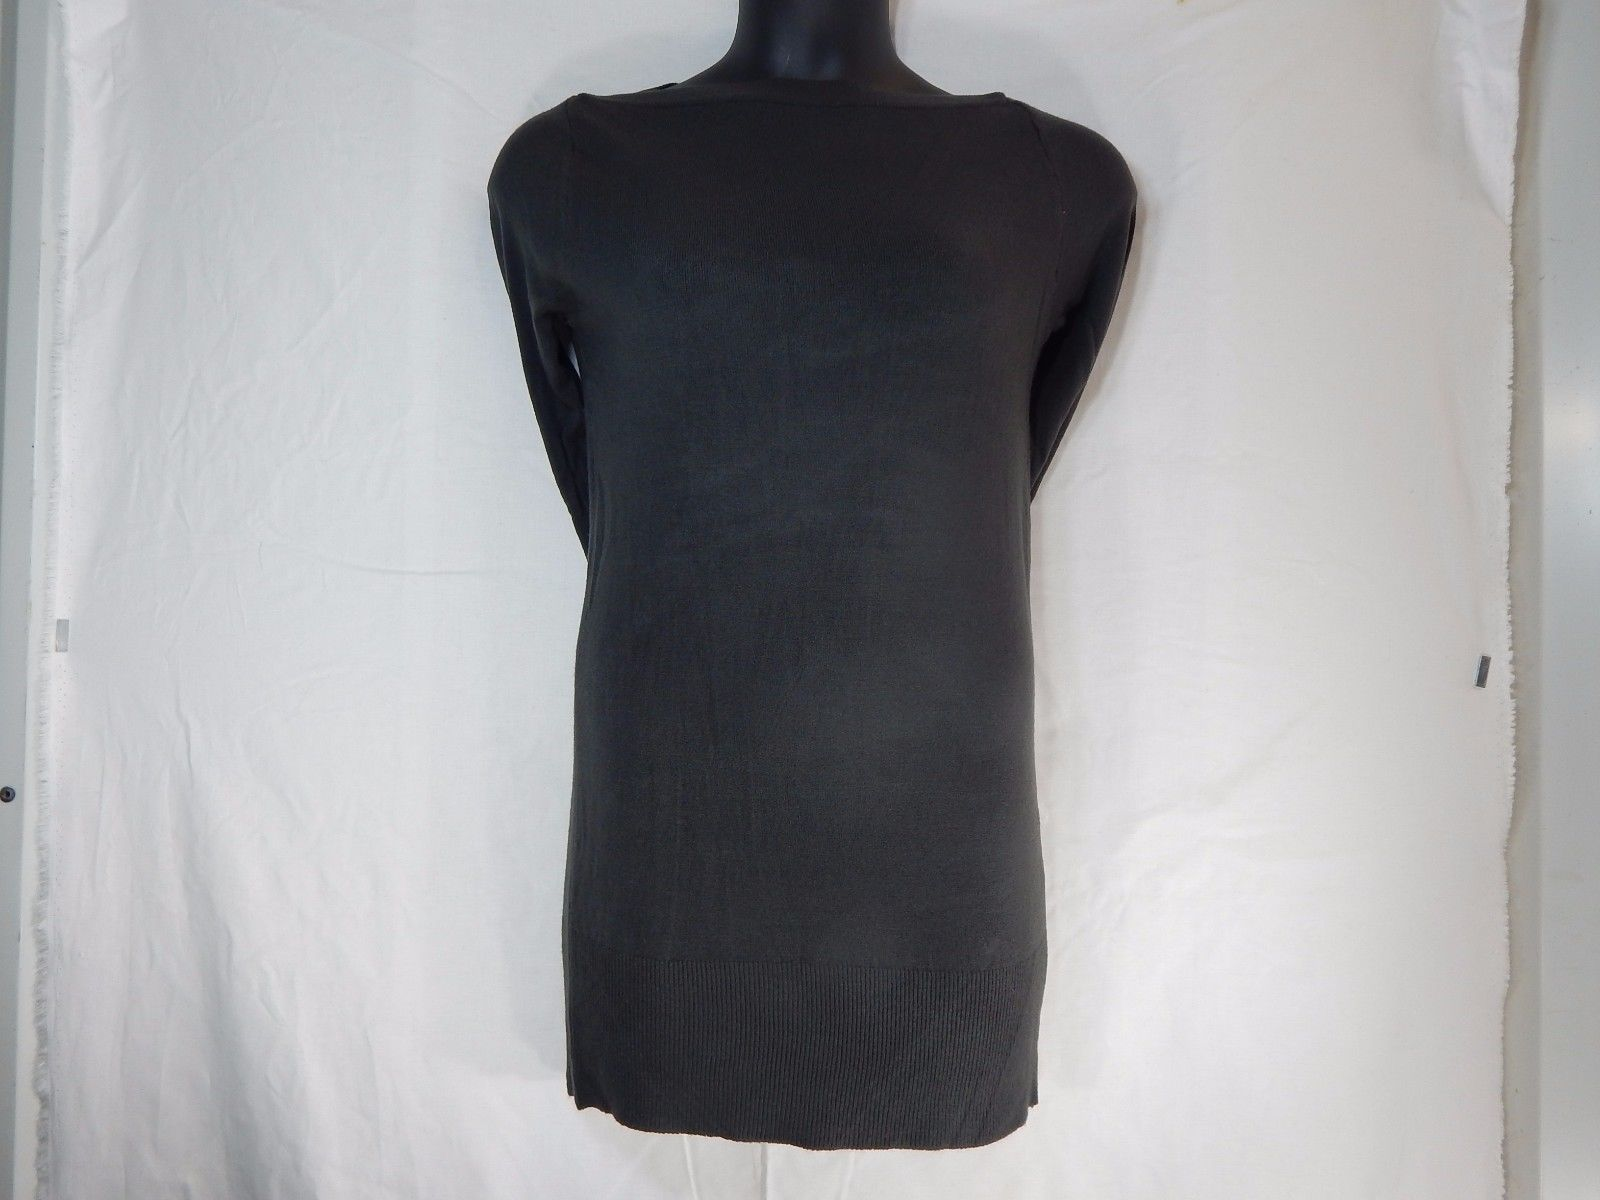 Wear Freedom Sweater Dress Long Sleeve Size: Small (S) Charcoal Gray